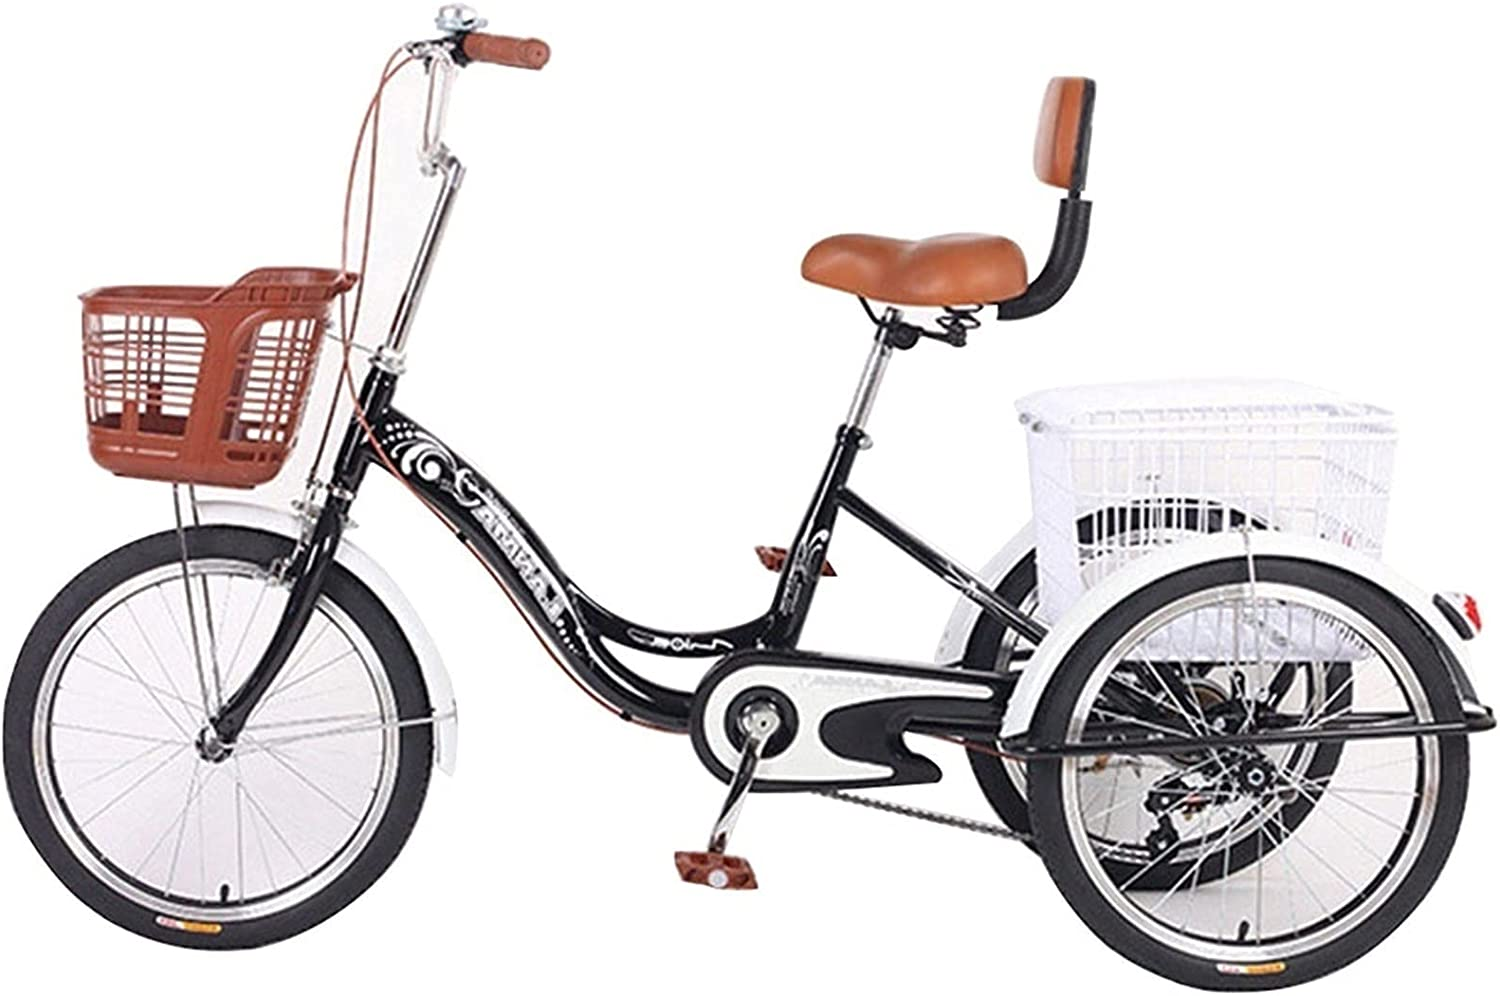 ZCXBHD Adult Lowest price challenge Tricycles 1 Speed 67% OFF of fixed price Trikes 3 Inch 20 Wheel Bike